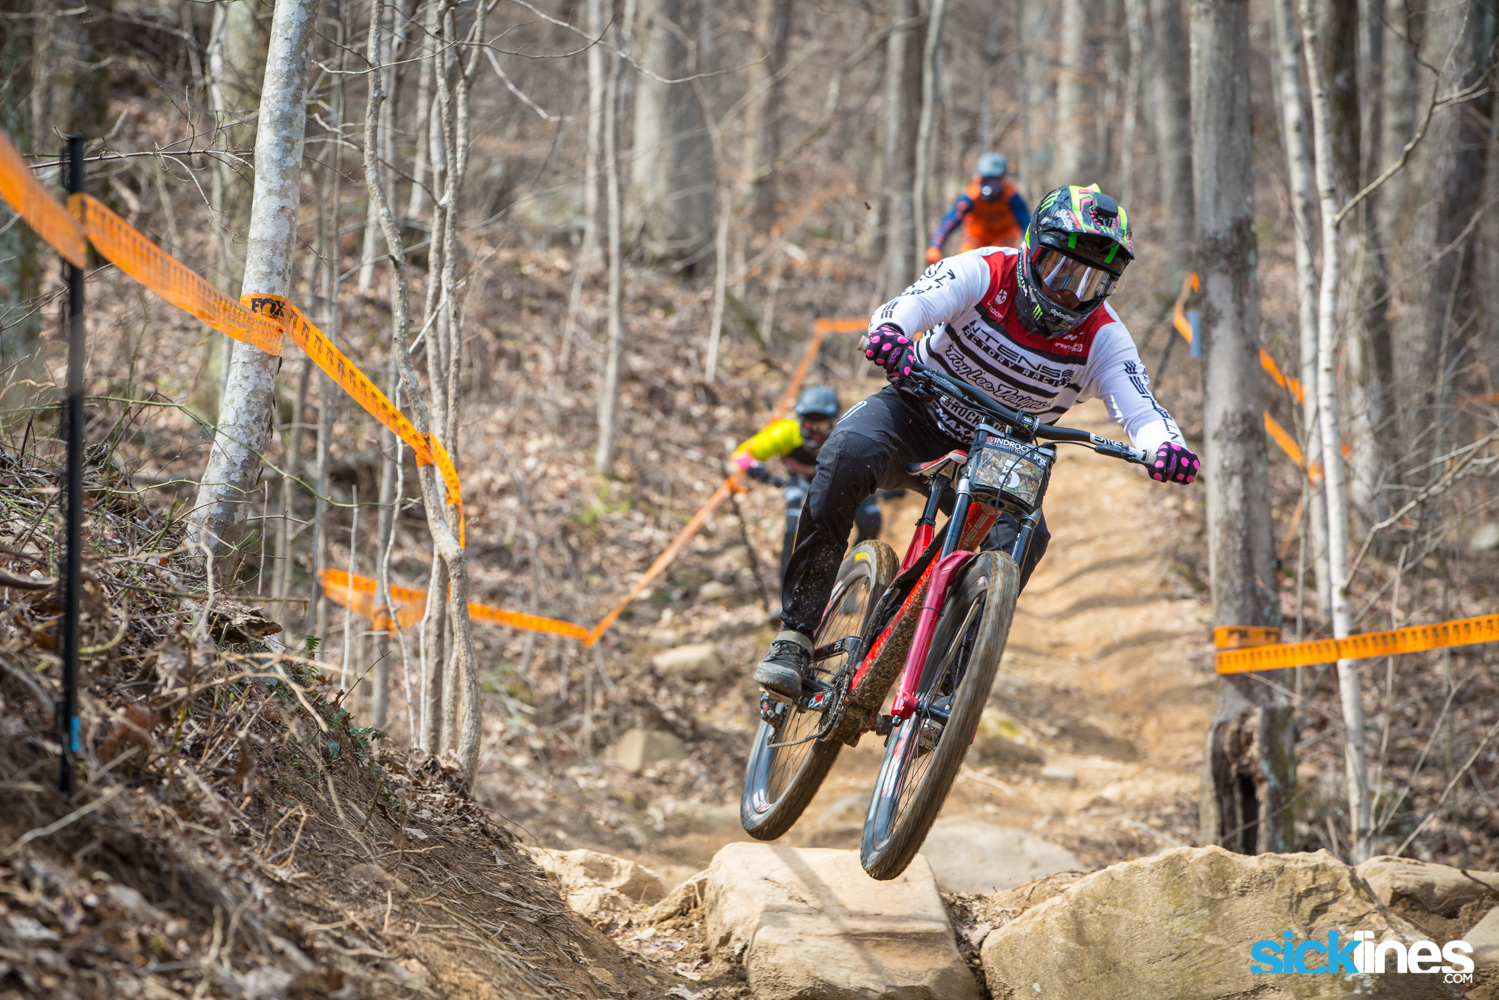 , Event: 2018 Pro GRT Practice Day 1 – Windrock Bike Park